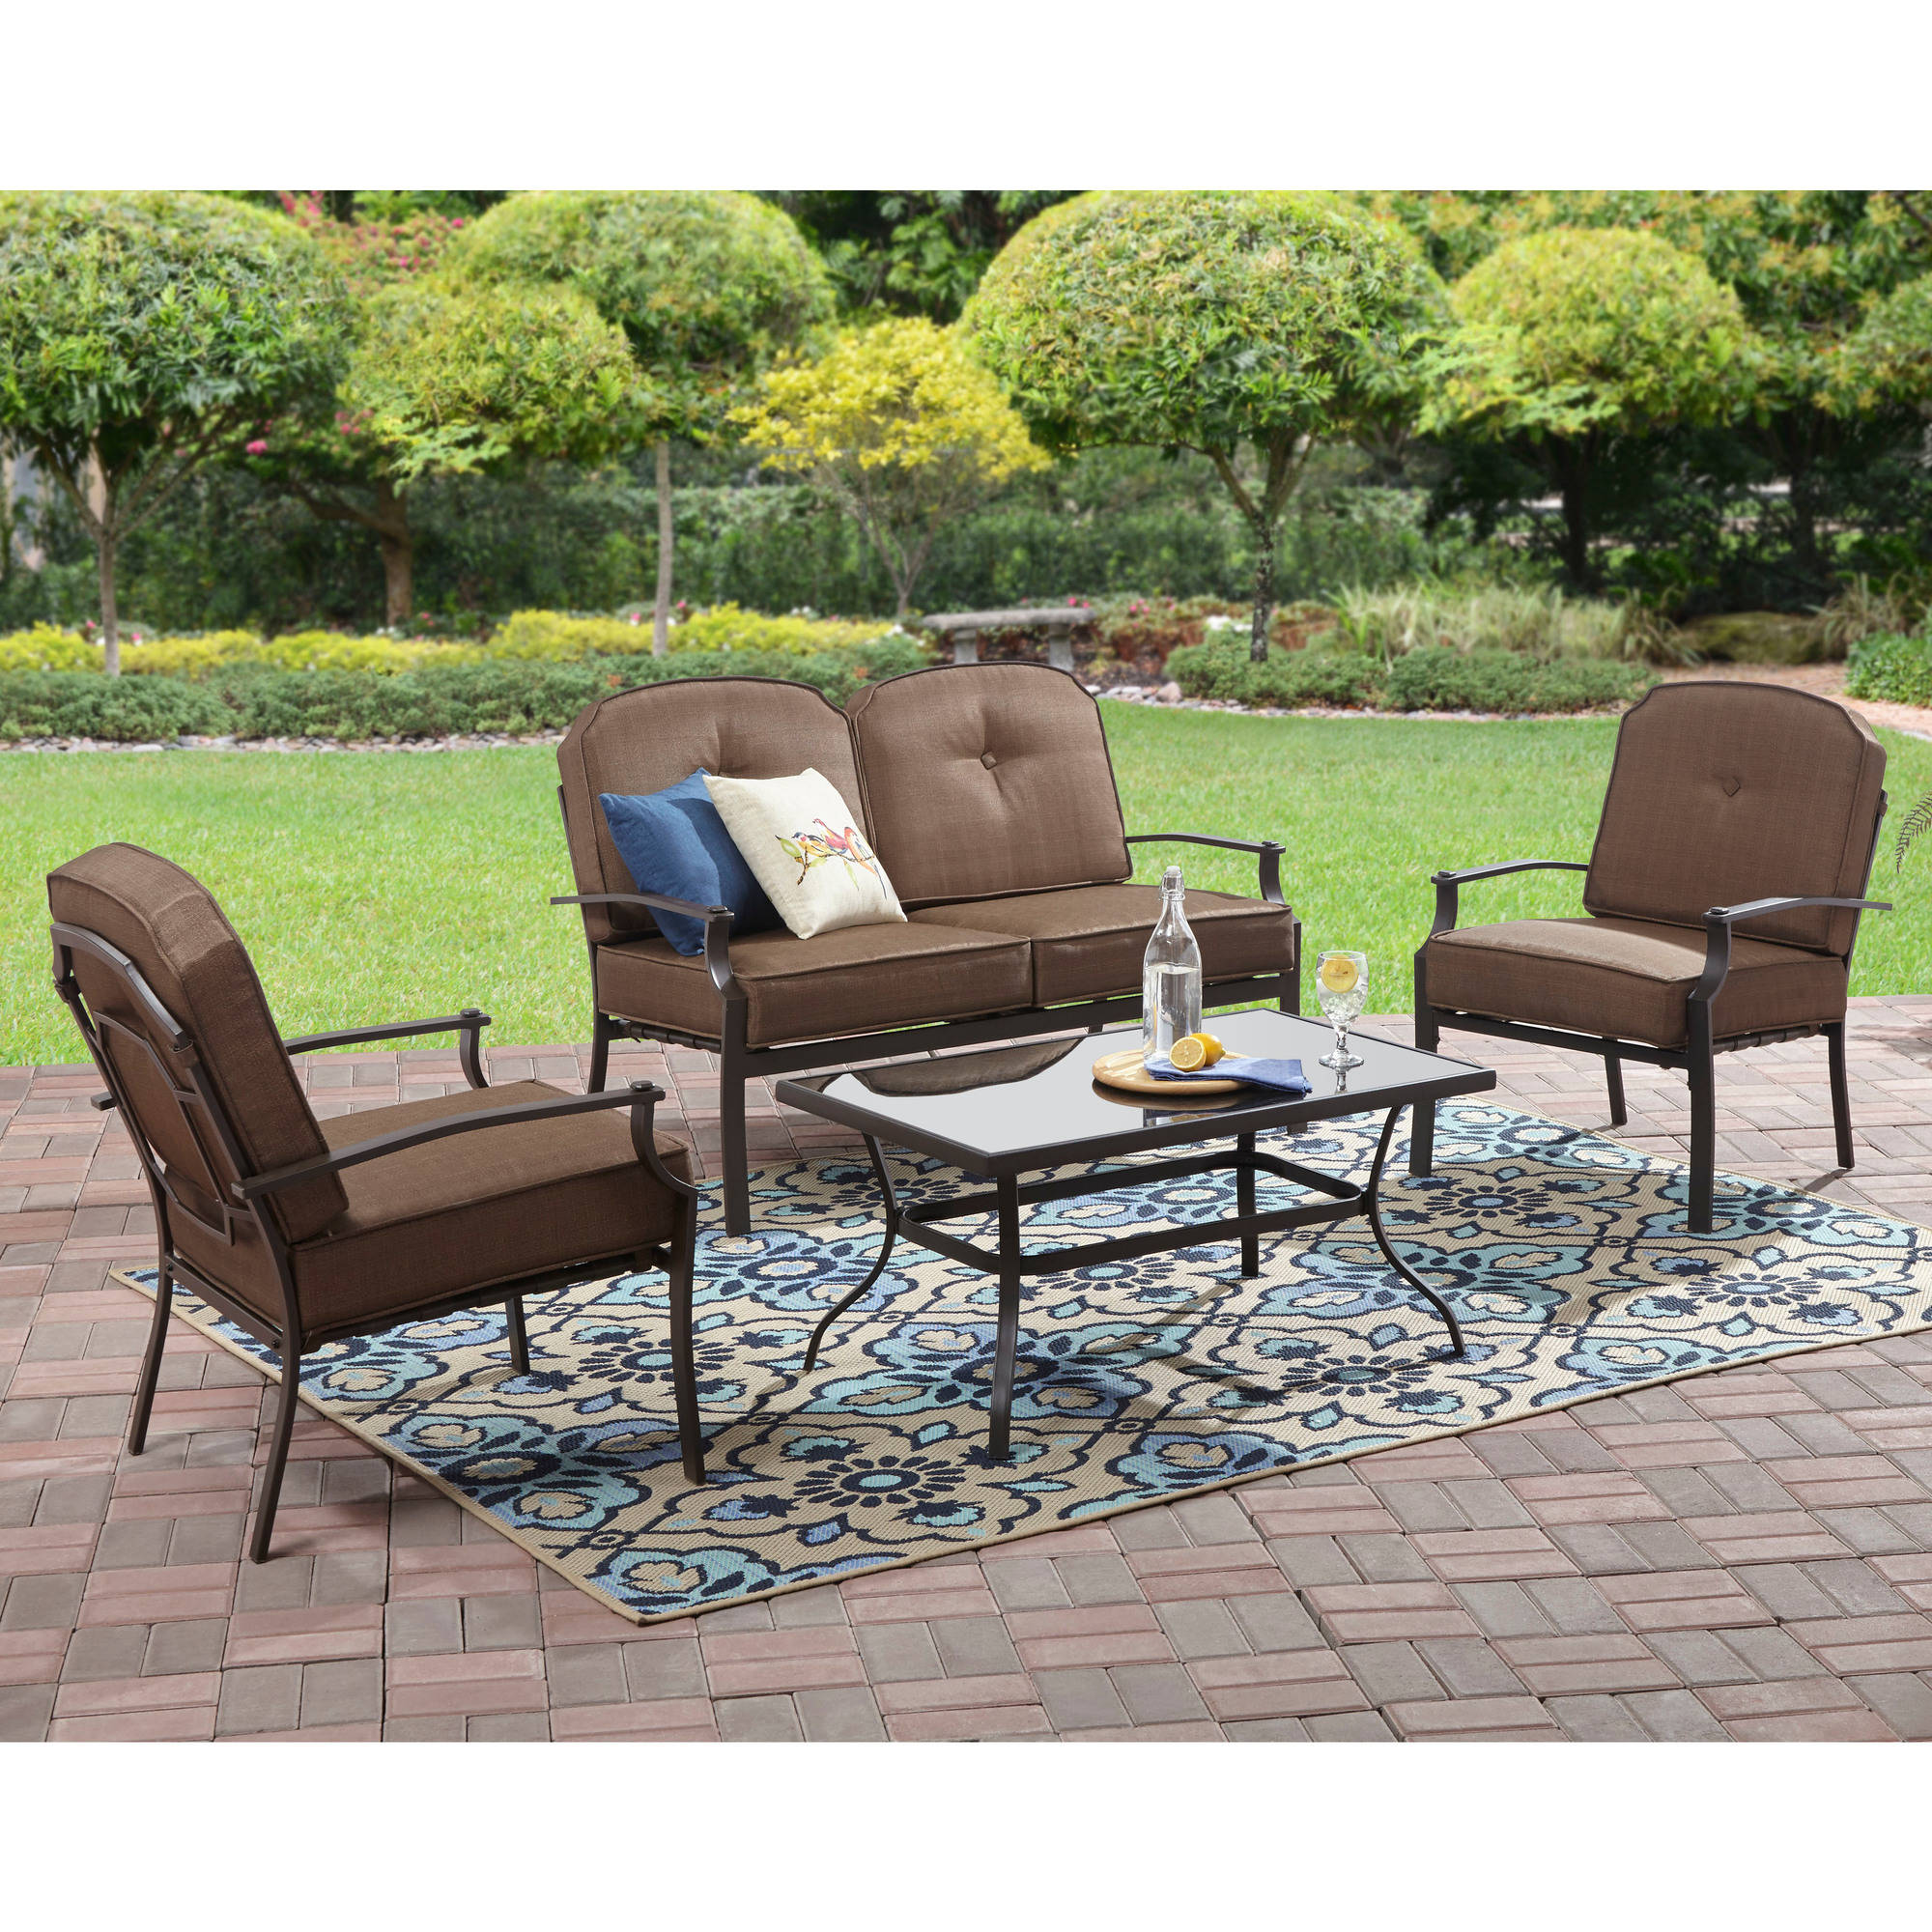 mainstays spring creek 5 piece patio dining set seats 4 walmartcom - Walmart Patio